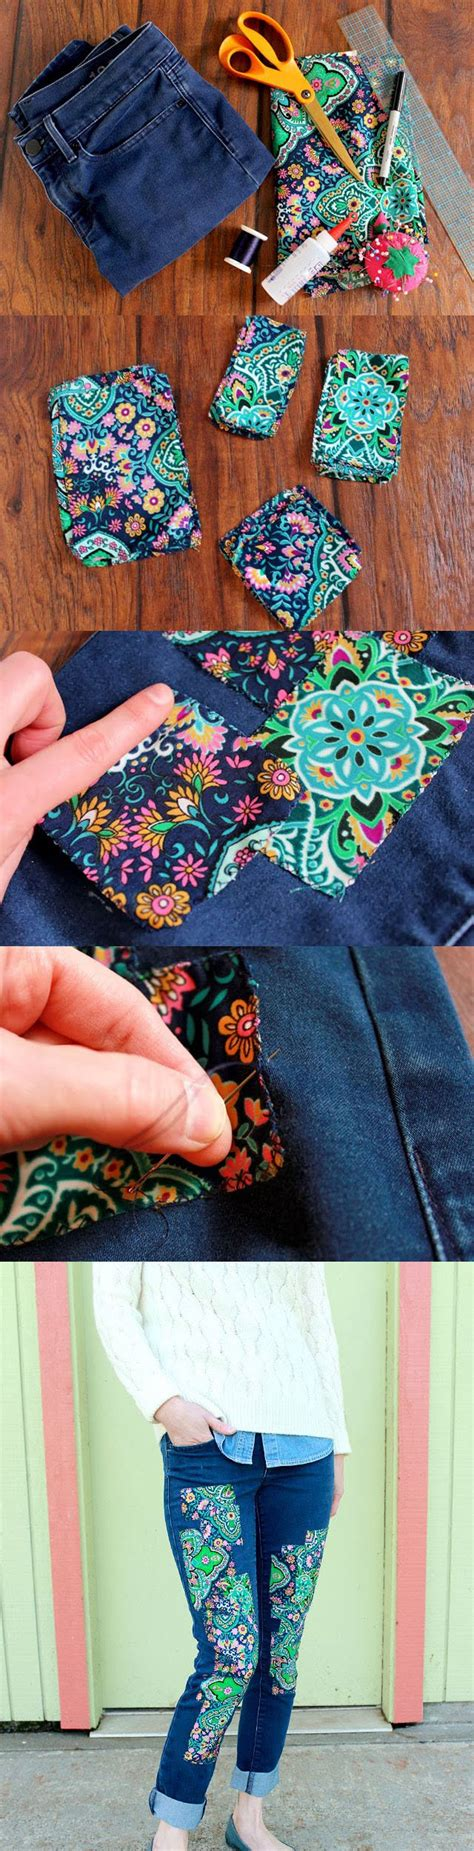 diy projects clothes 15 diy clothing tutorials fashionable diy clothes you